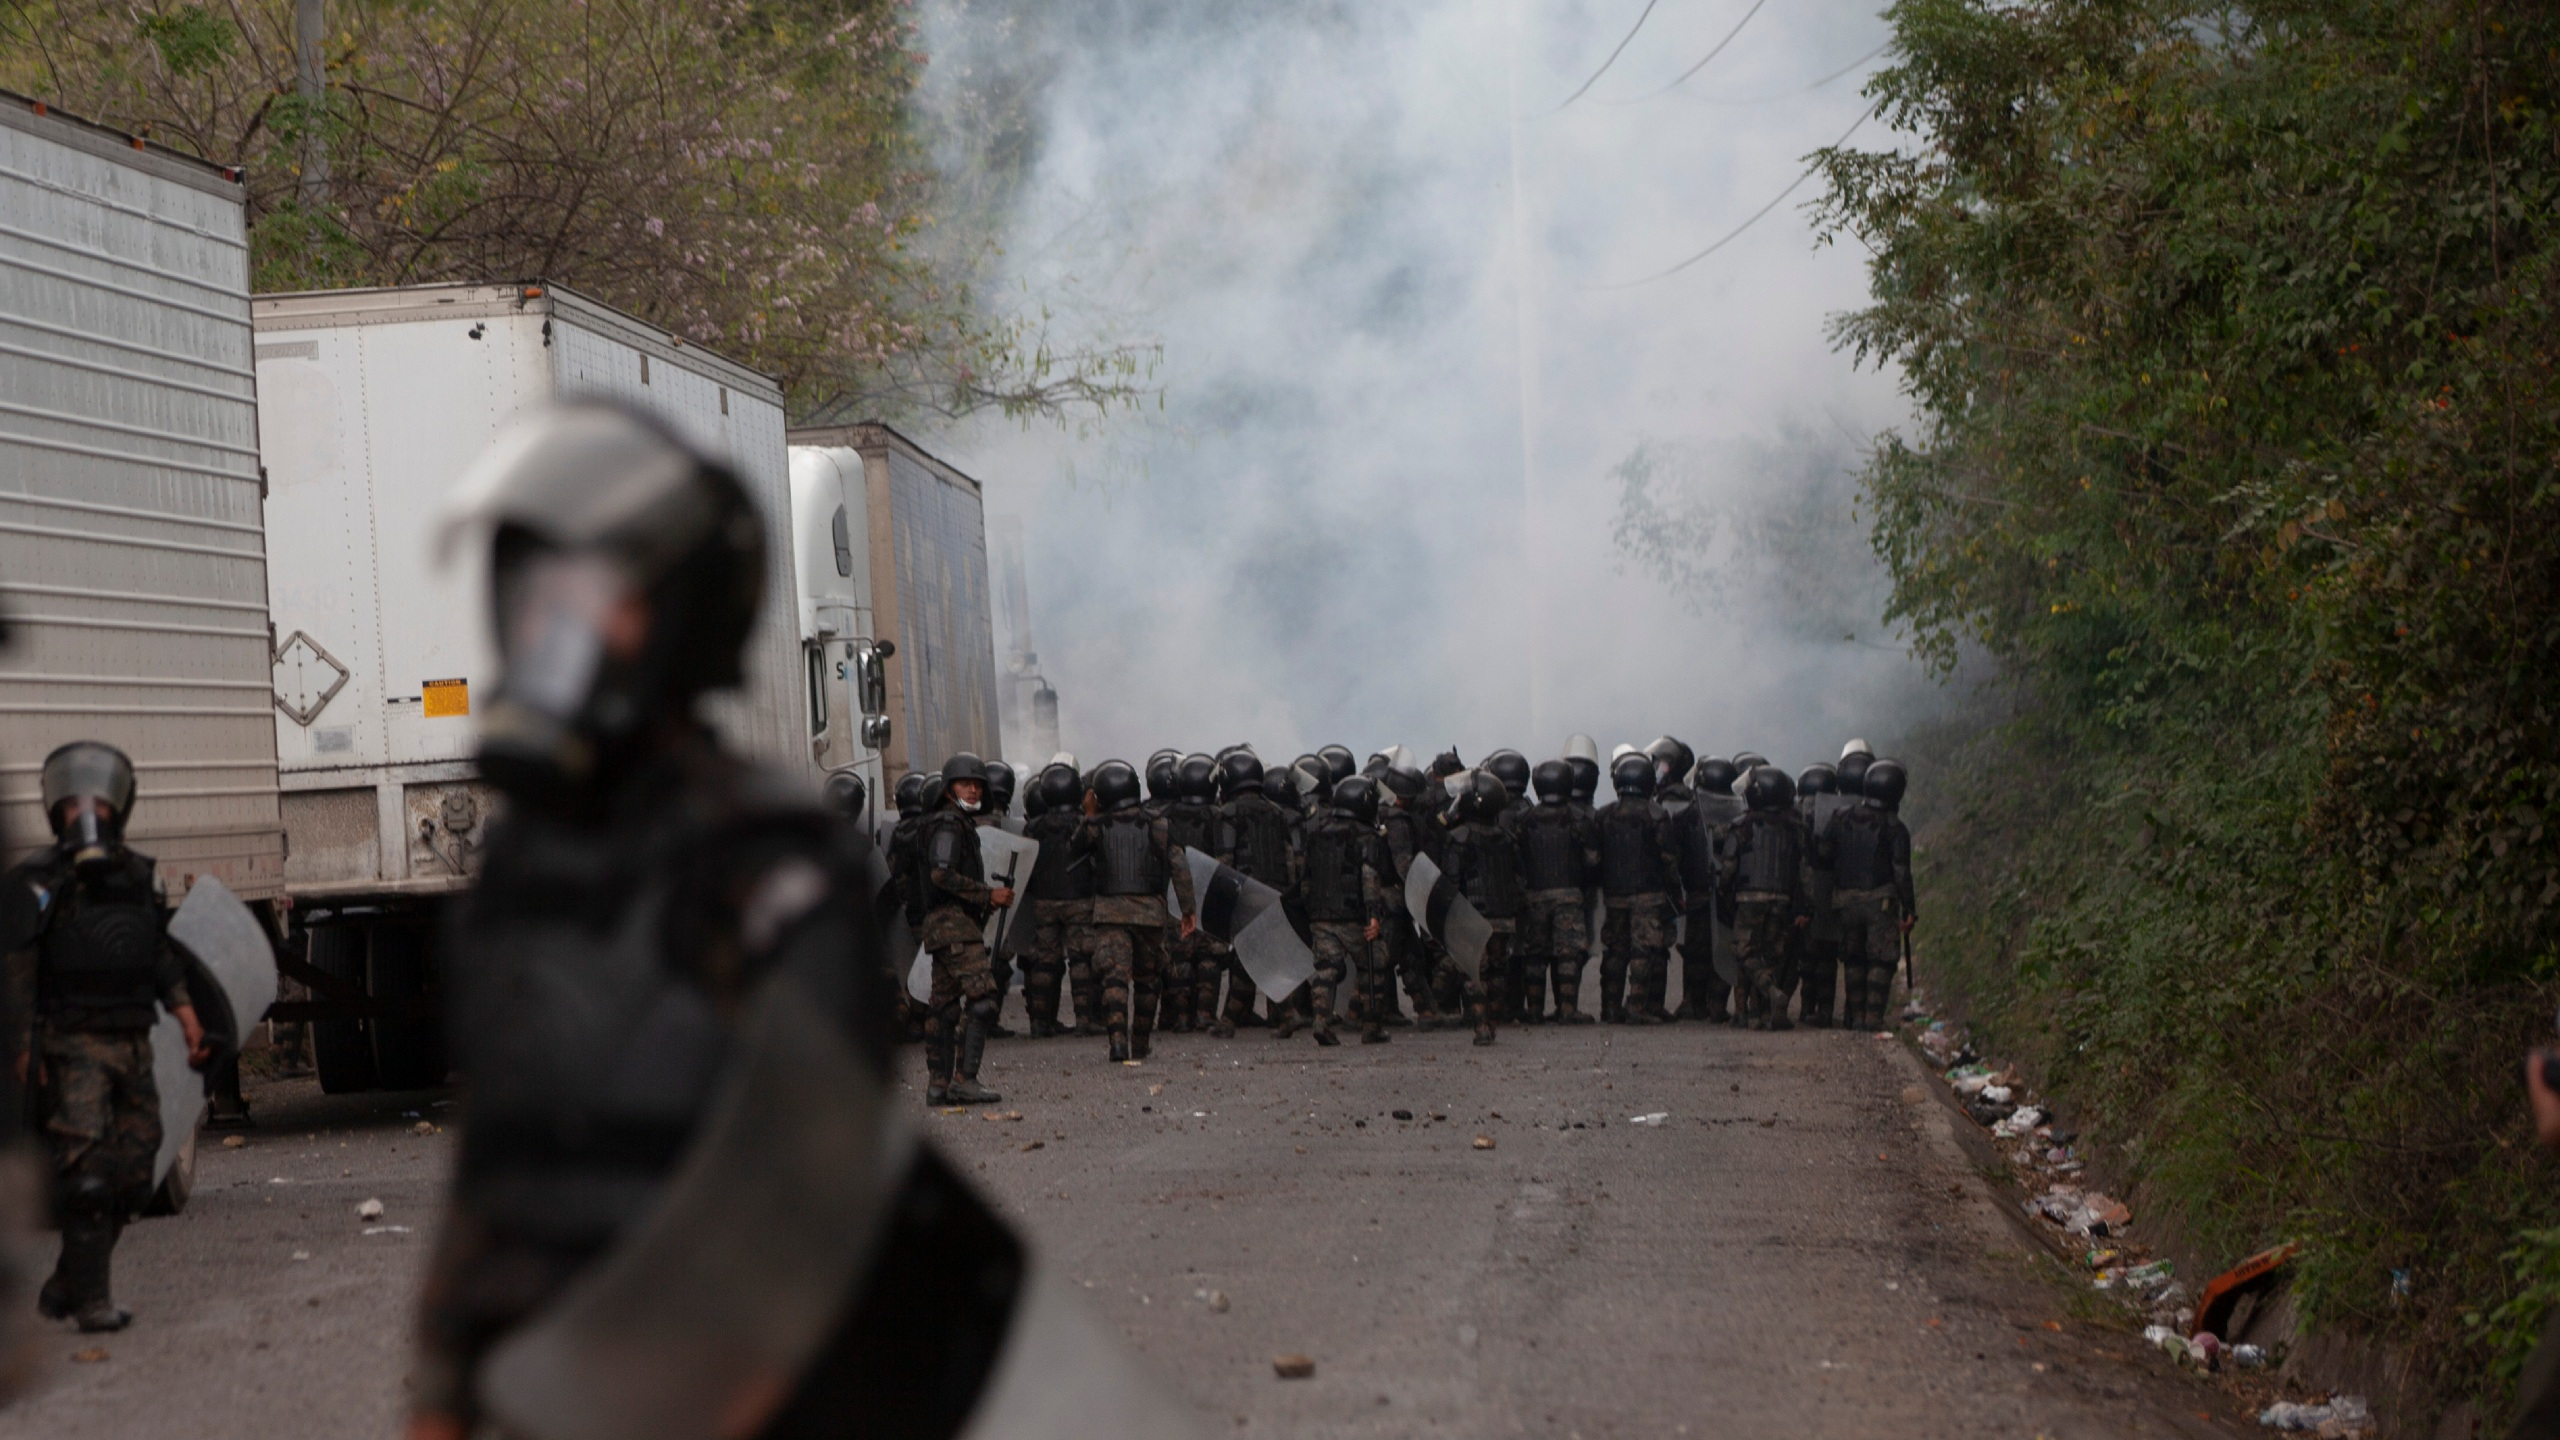 A cloud of tear gas rises as Guatemalan soldiers and police clash with migrants at a roadblock on the highway in Vado Hondo, Guatemala, Monday, Jan. 18, 2021. The roadblock was strategically placed at a chokepoint on the two-lane highway flanked by a tall mountainside and a wall leaving the migrants with few options. (AP Photo/Sandra Sebastian)